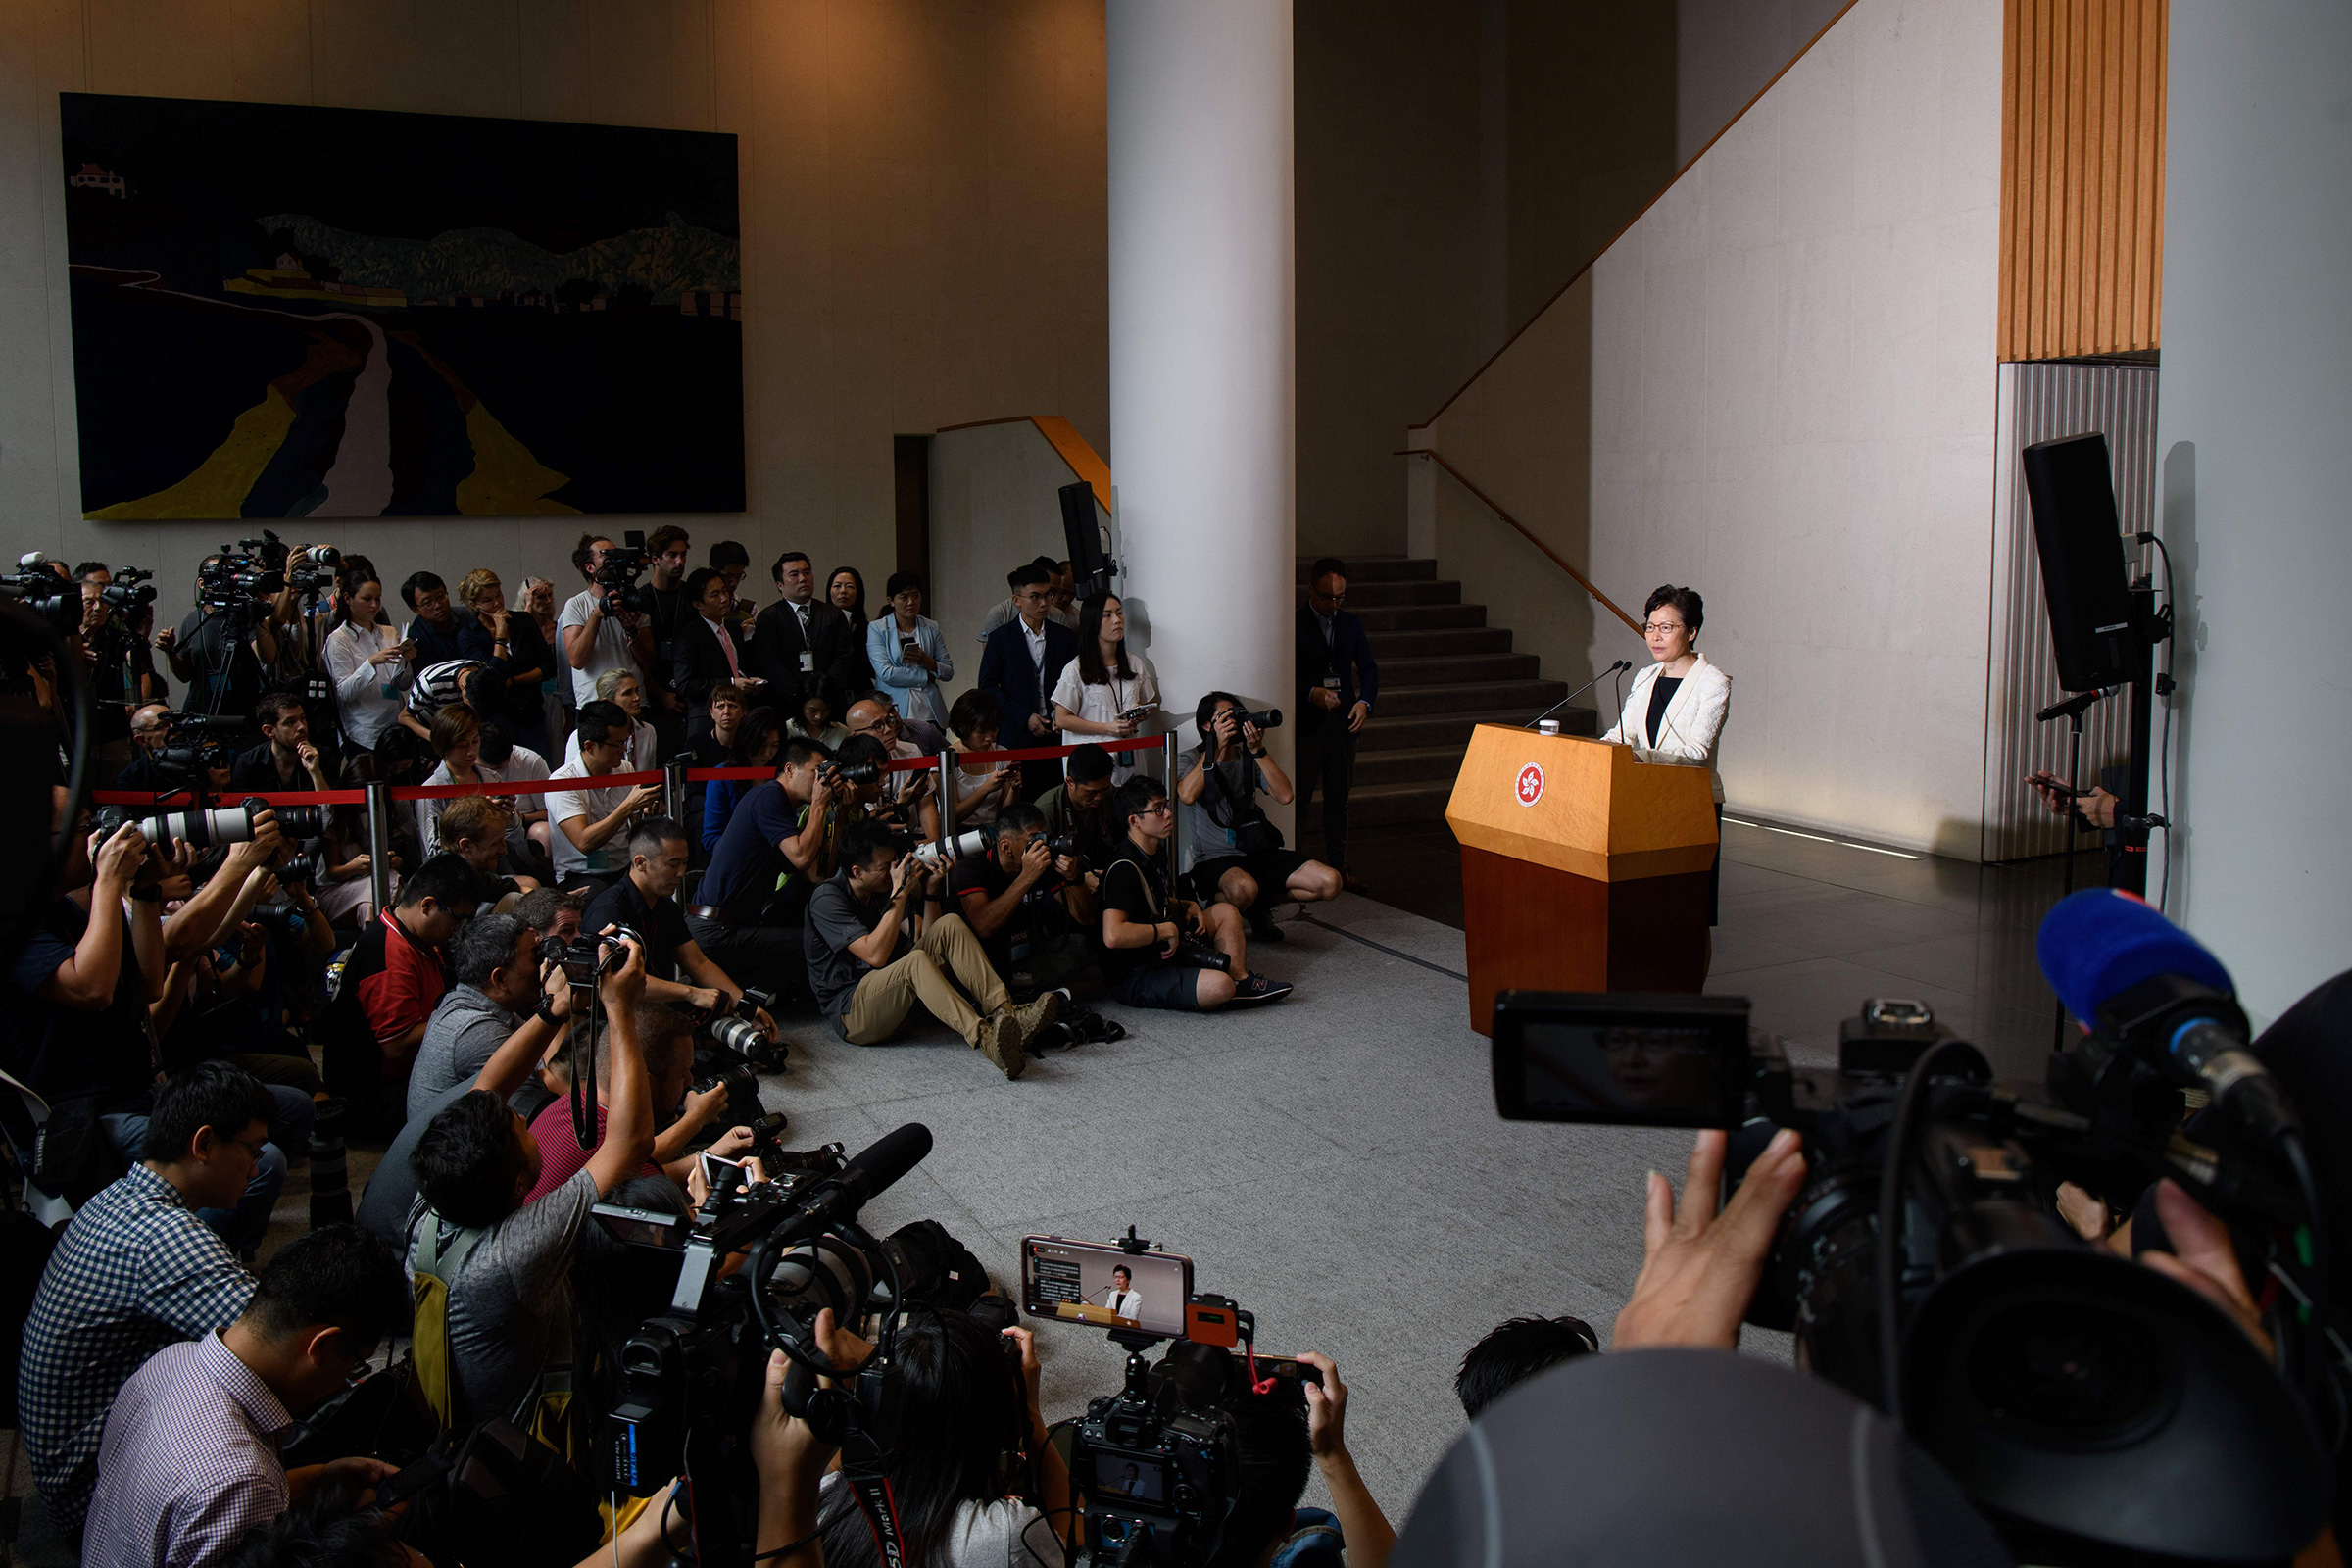 Hong Kong Chief Executive Carrie Lam speaks to the media during her weekly press conference in Hong Kong on Sept. 3, 2019.